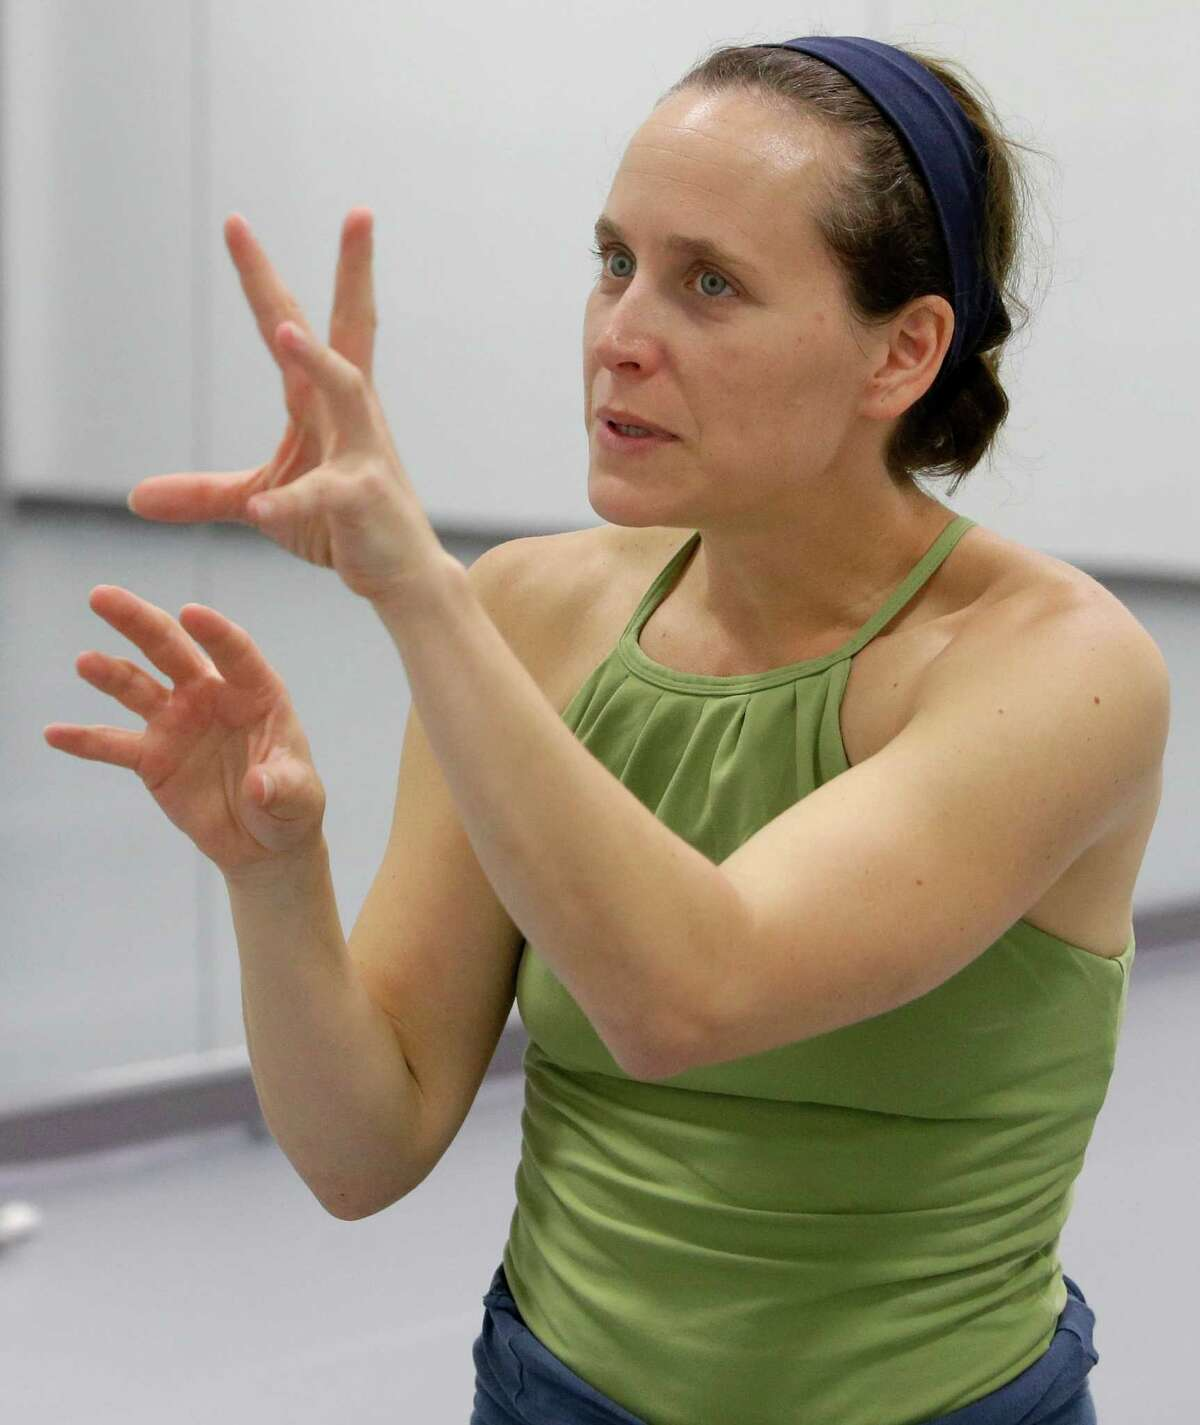 Dancer and choreographer Annie Arnoult, is shown at her studio, Hunter Dance Center, 747 N. Shepherd, Wednesday, Sept. 30, 2015, in Houston. The Houston native returned this year to open a new studio and establish her Open Dance Project here. ( Melissa Phillip /Houston Chronicle )